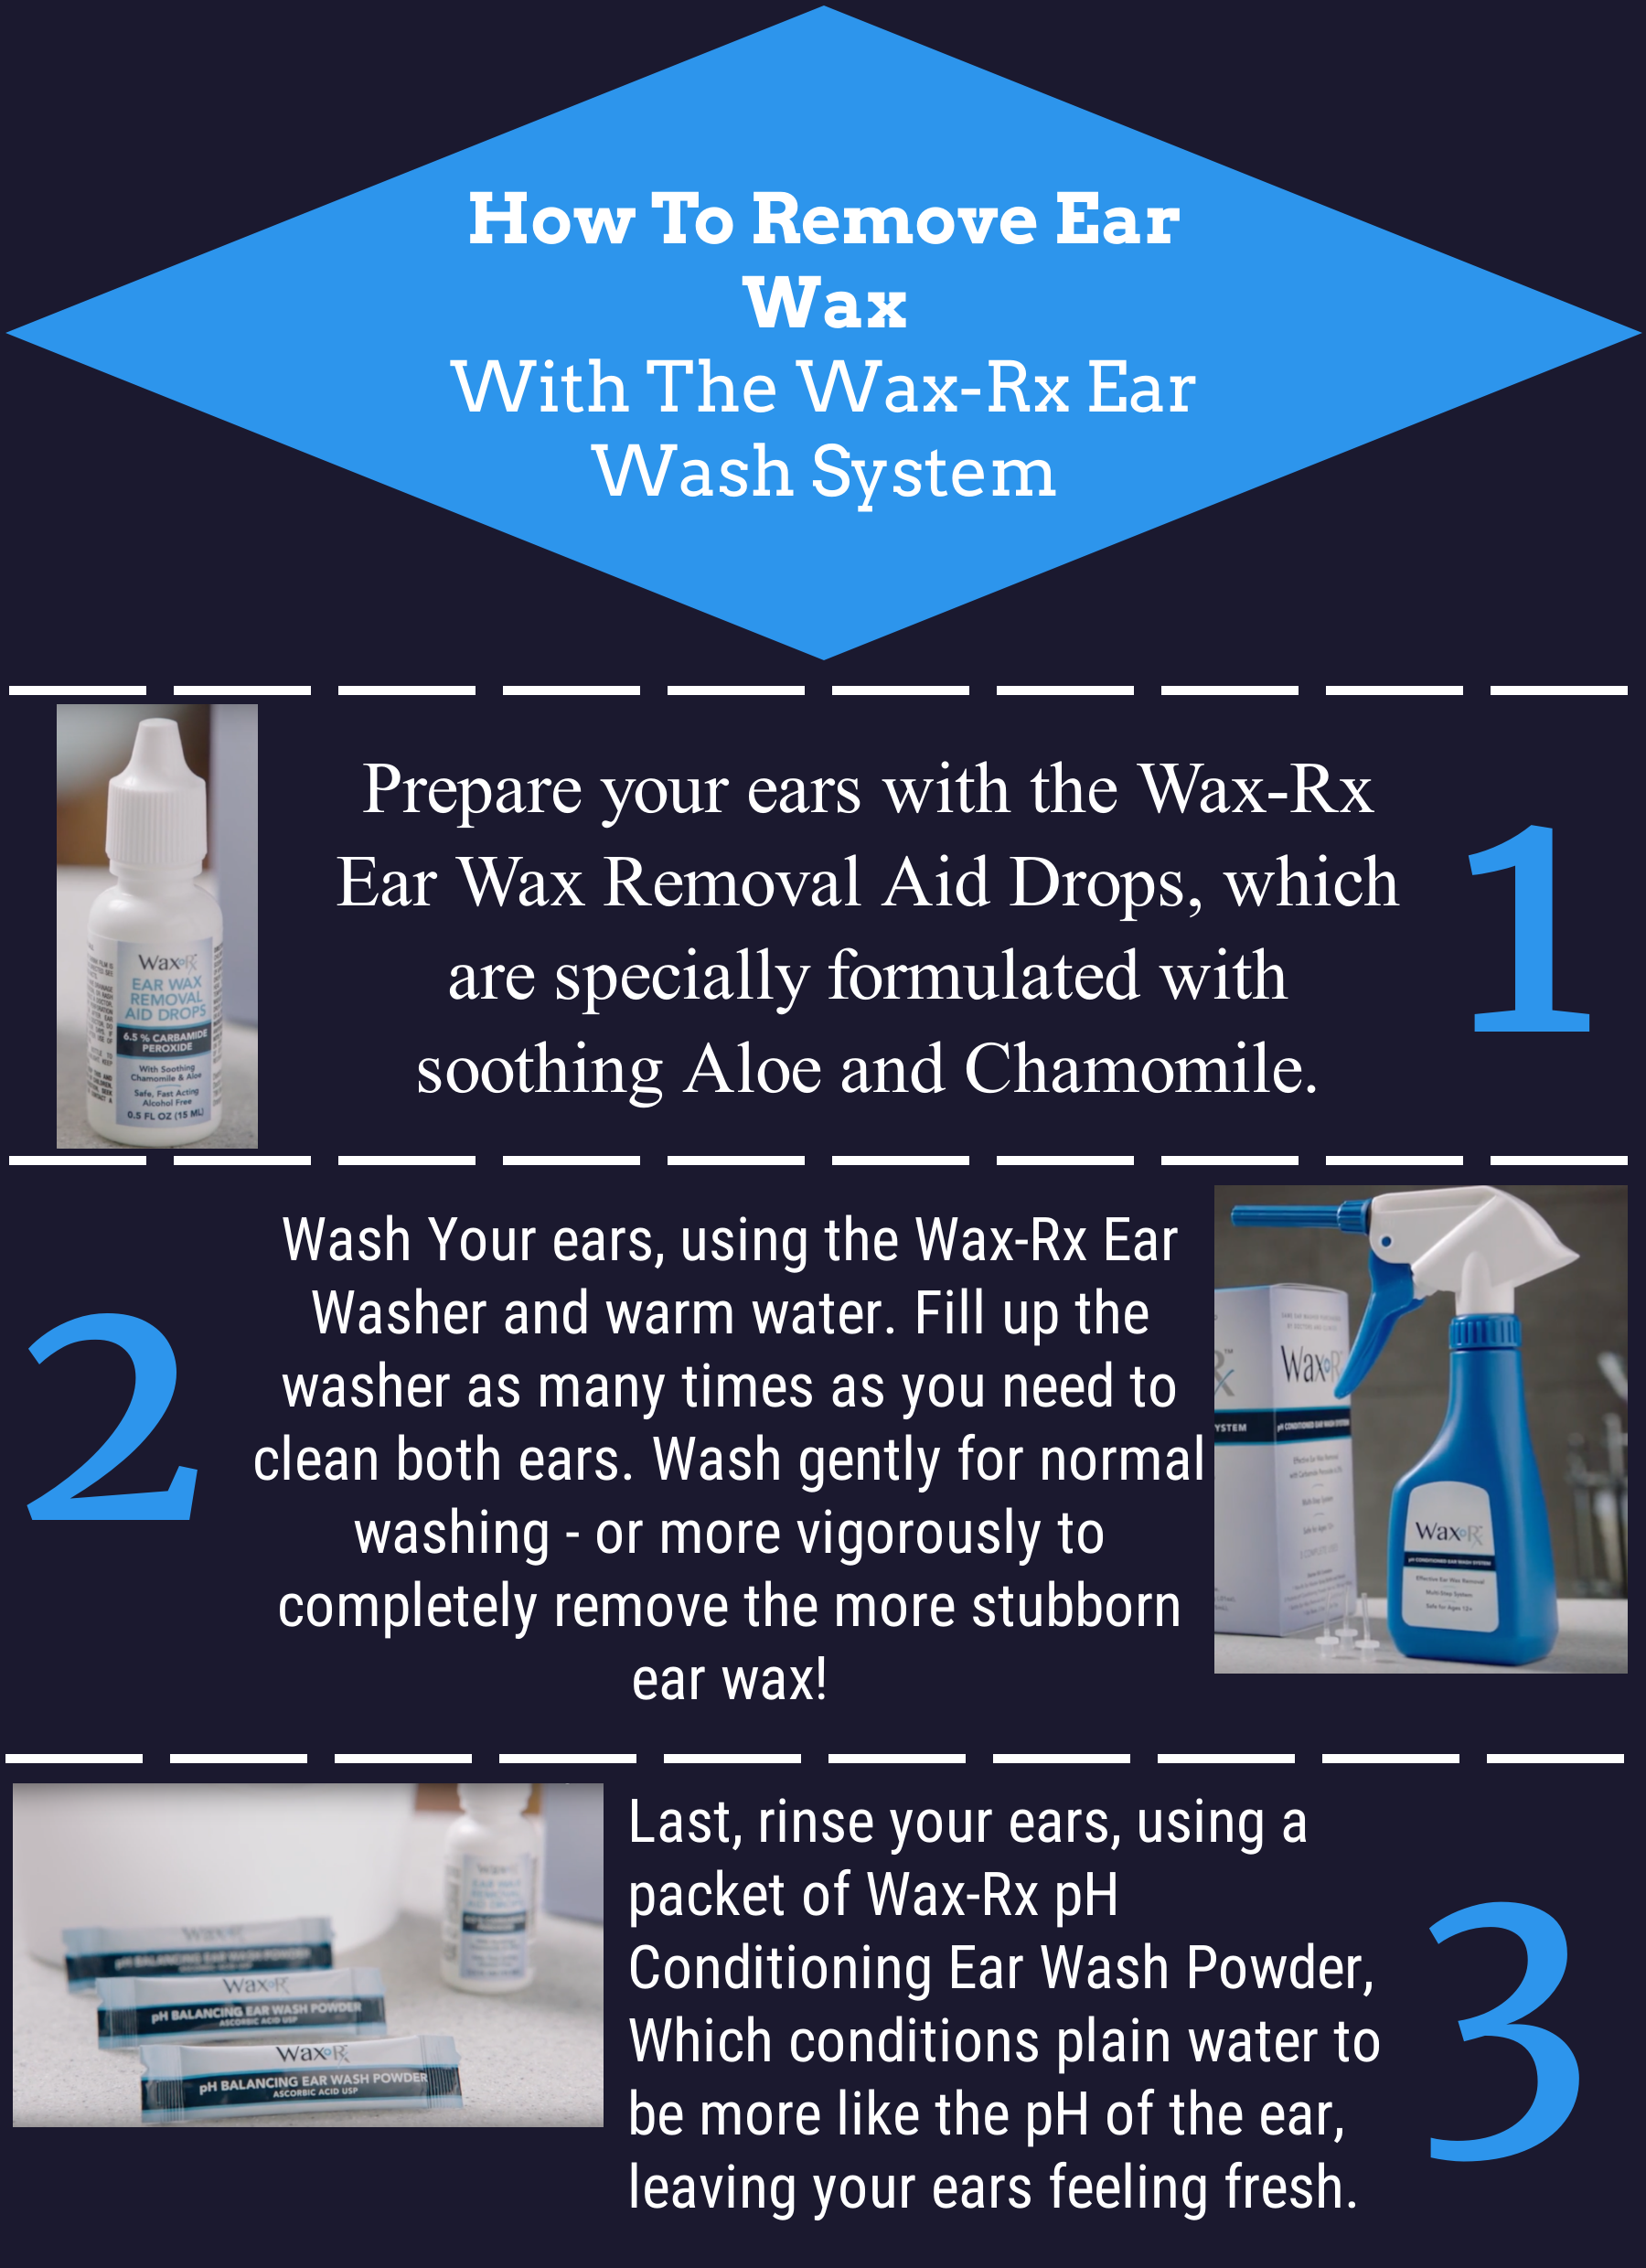 Removing ear wax with the WaxRx pH Conditioned Ear Wash